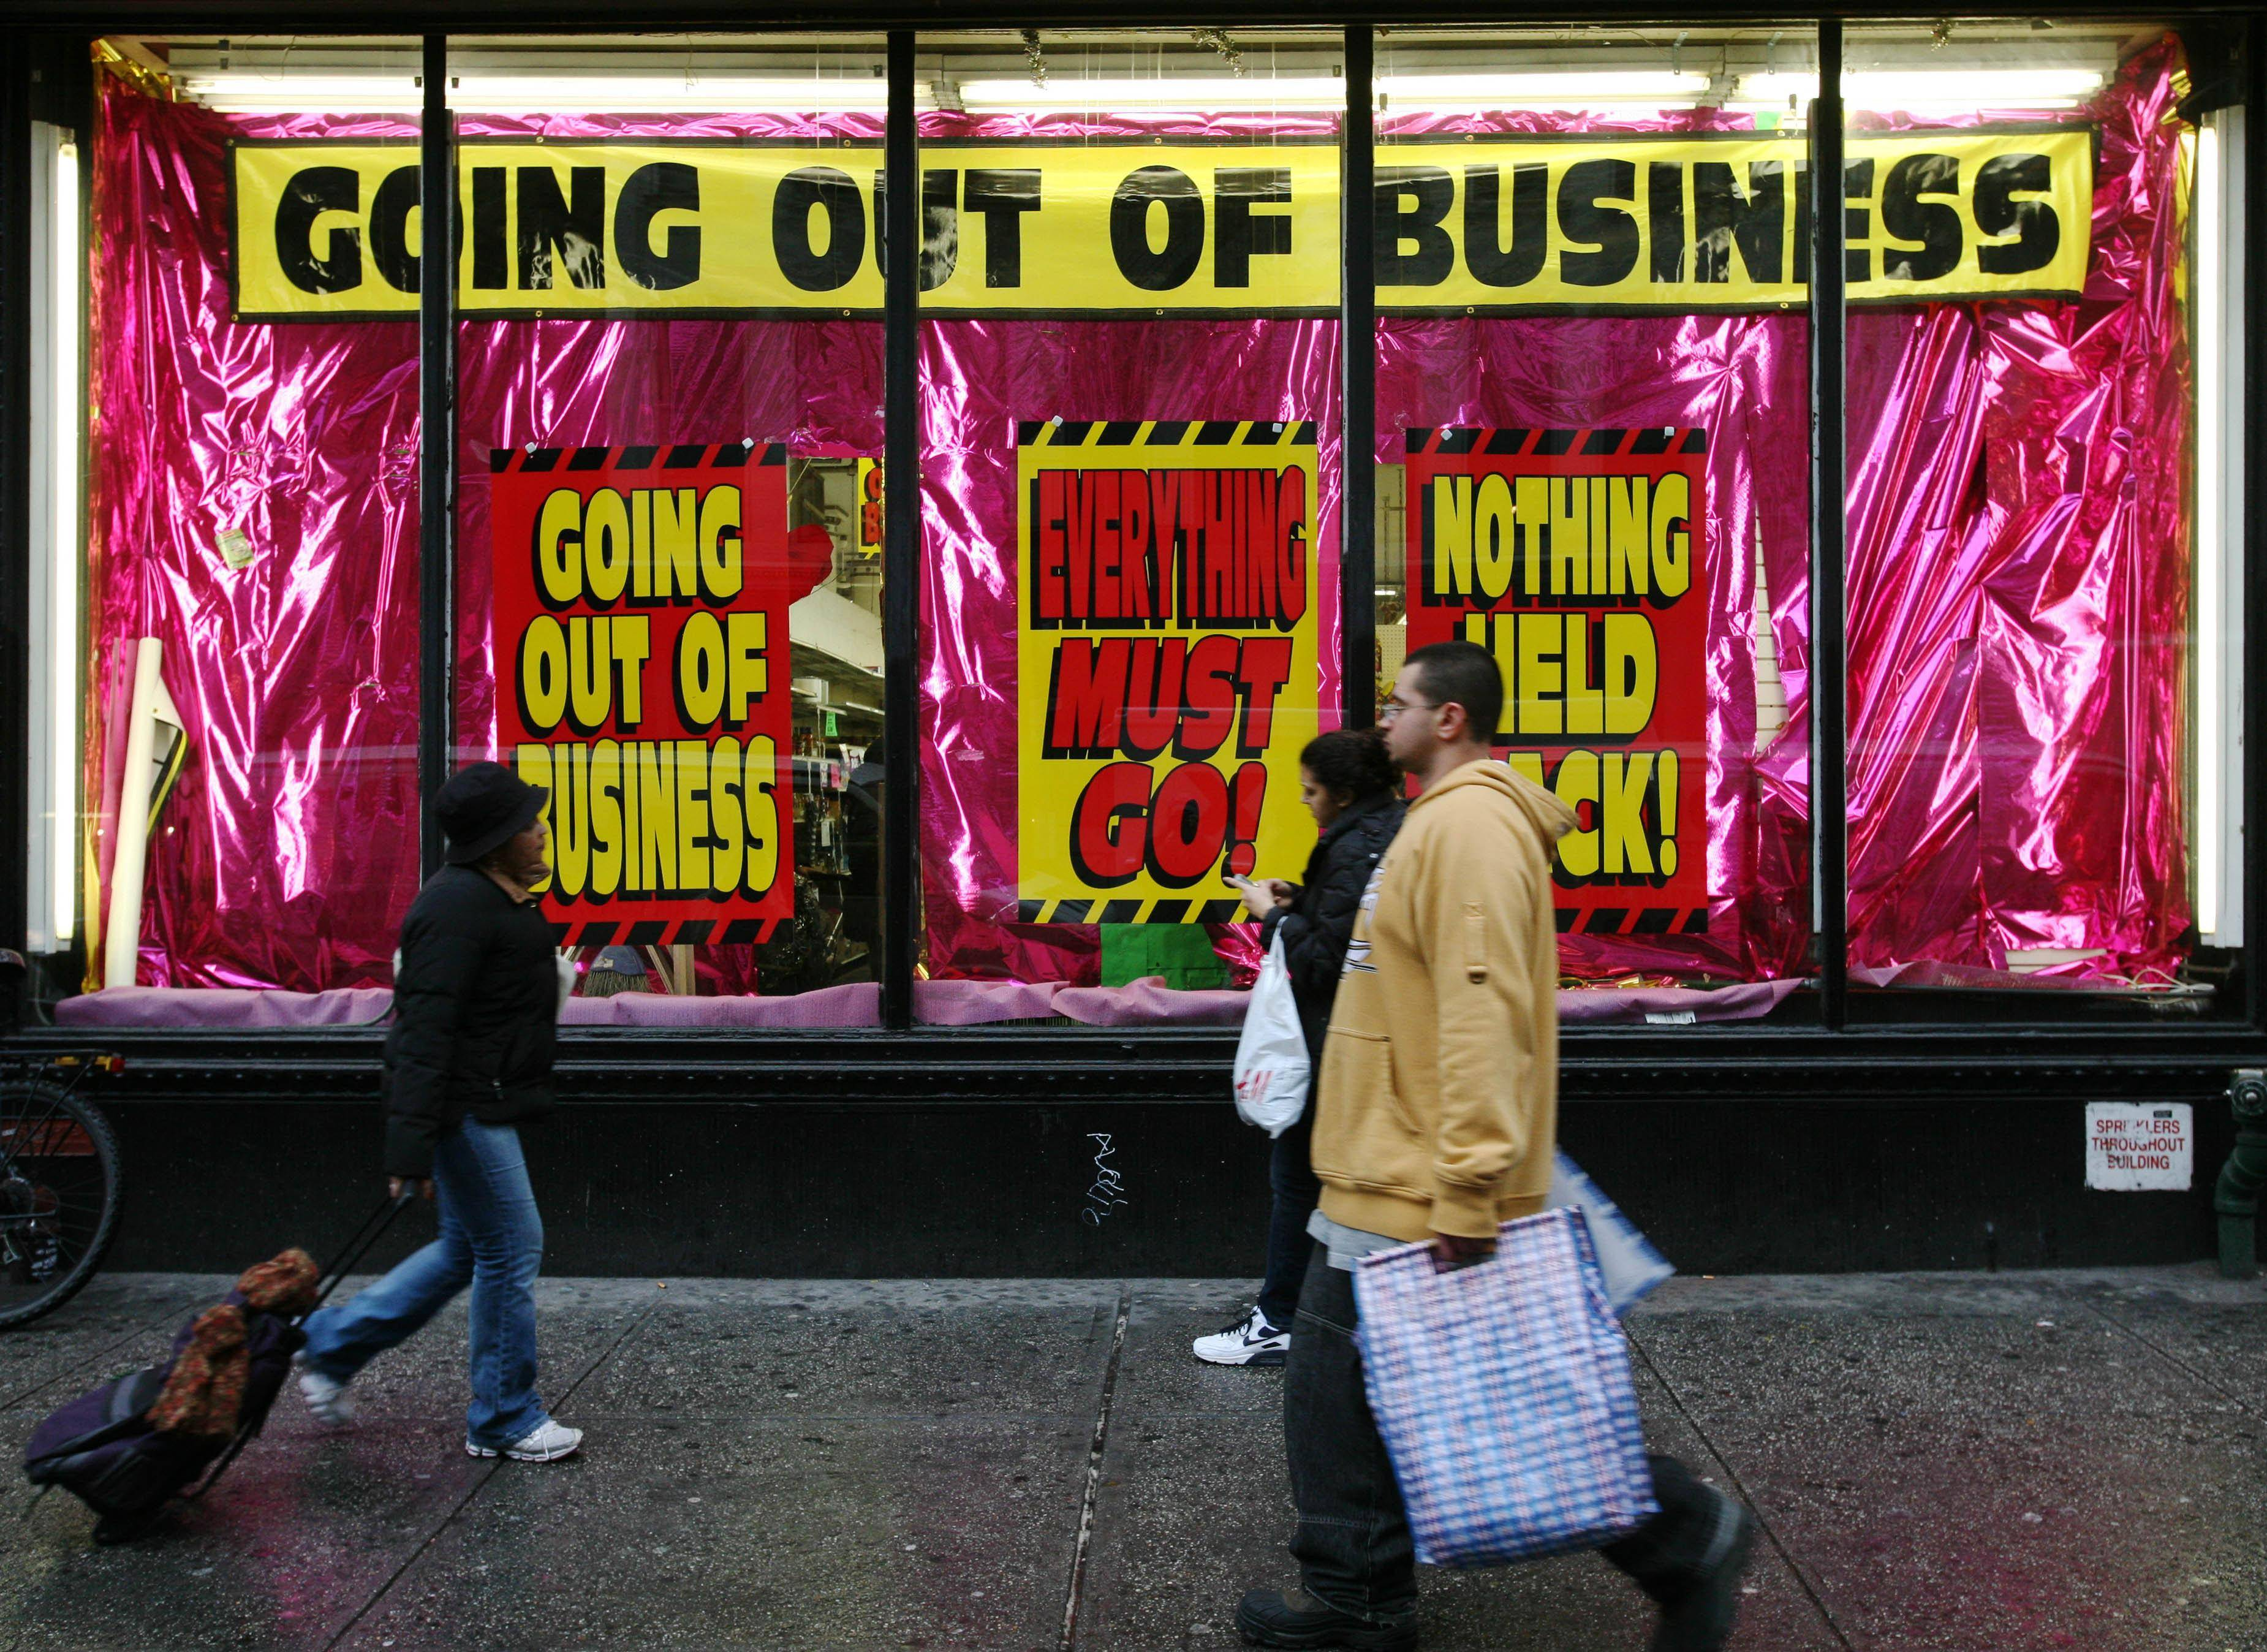 A store advertises that it is going out of business in December 2008. Between 2000 and 2007, borrowed money was adding about $330 billion a year to Americans' purchasing power, according to the Federal Reserve Bank of New York. By 2009, households were diverting $150 billion to pay back debt -- a swing of almost half a trillion dollars, even without counting the impact of lost jobs.